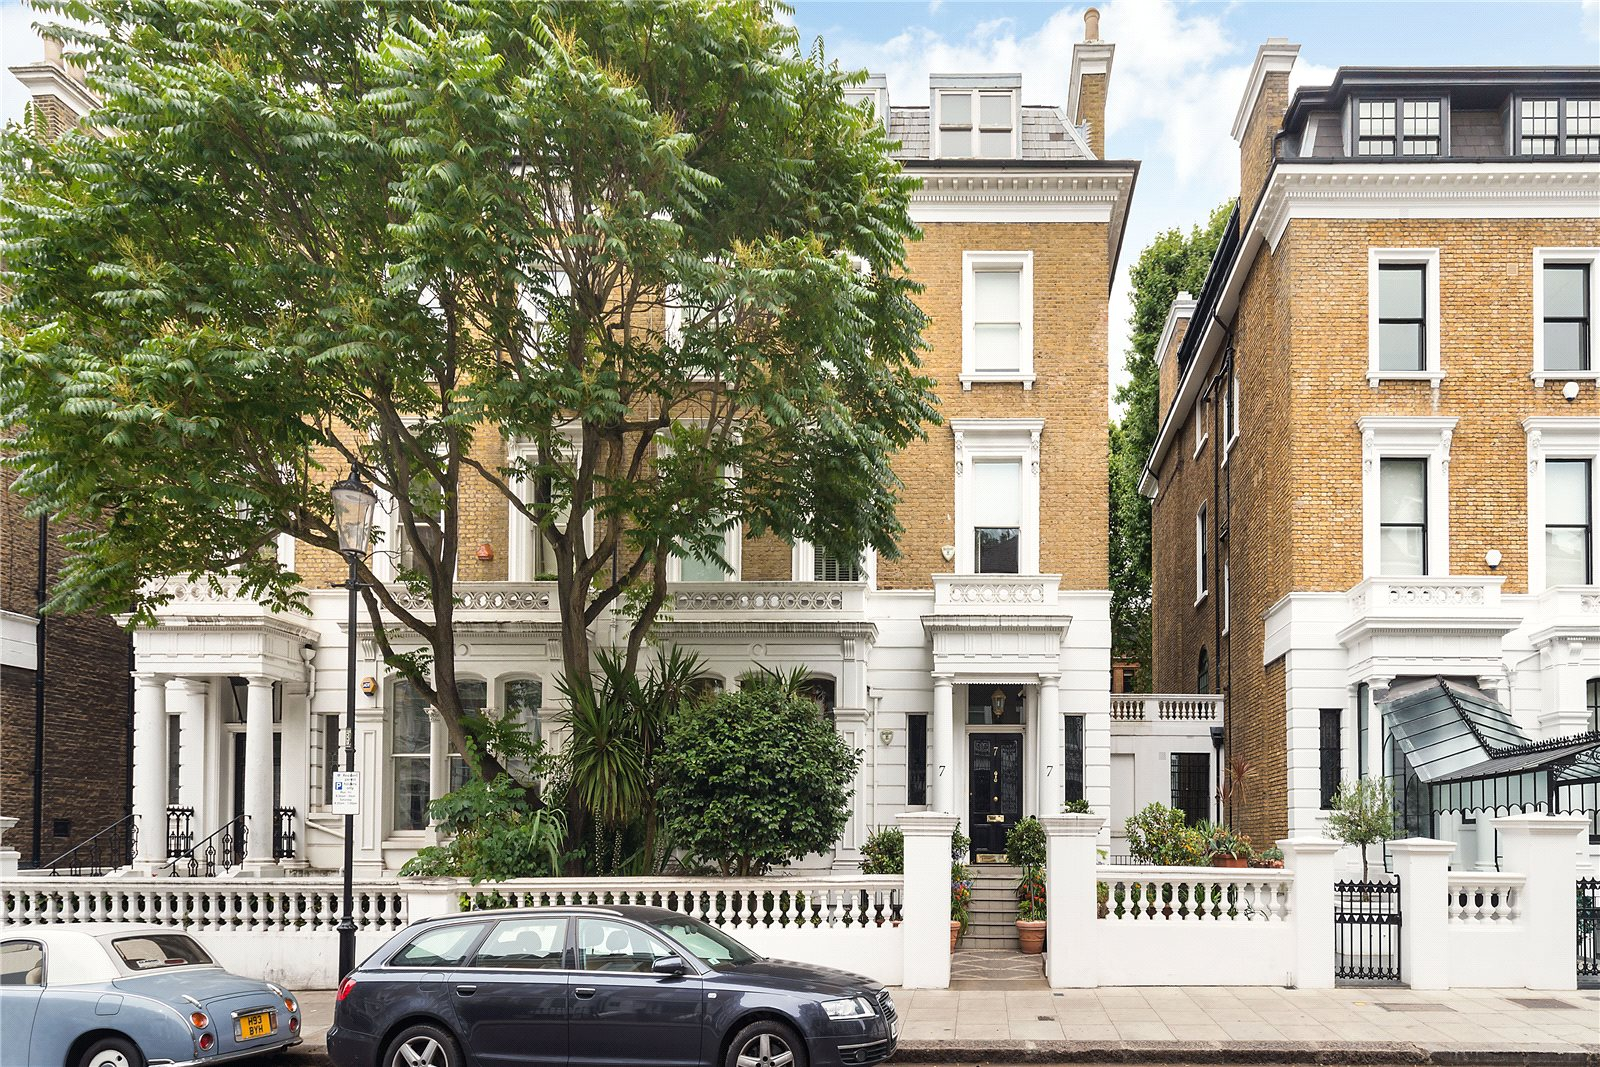 Additional photo for property listing at Wetherby Gardens, South Kensington, London, SW5 South Kensington, London, Англия